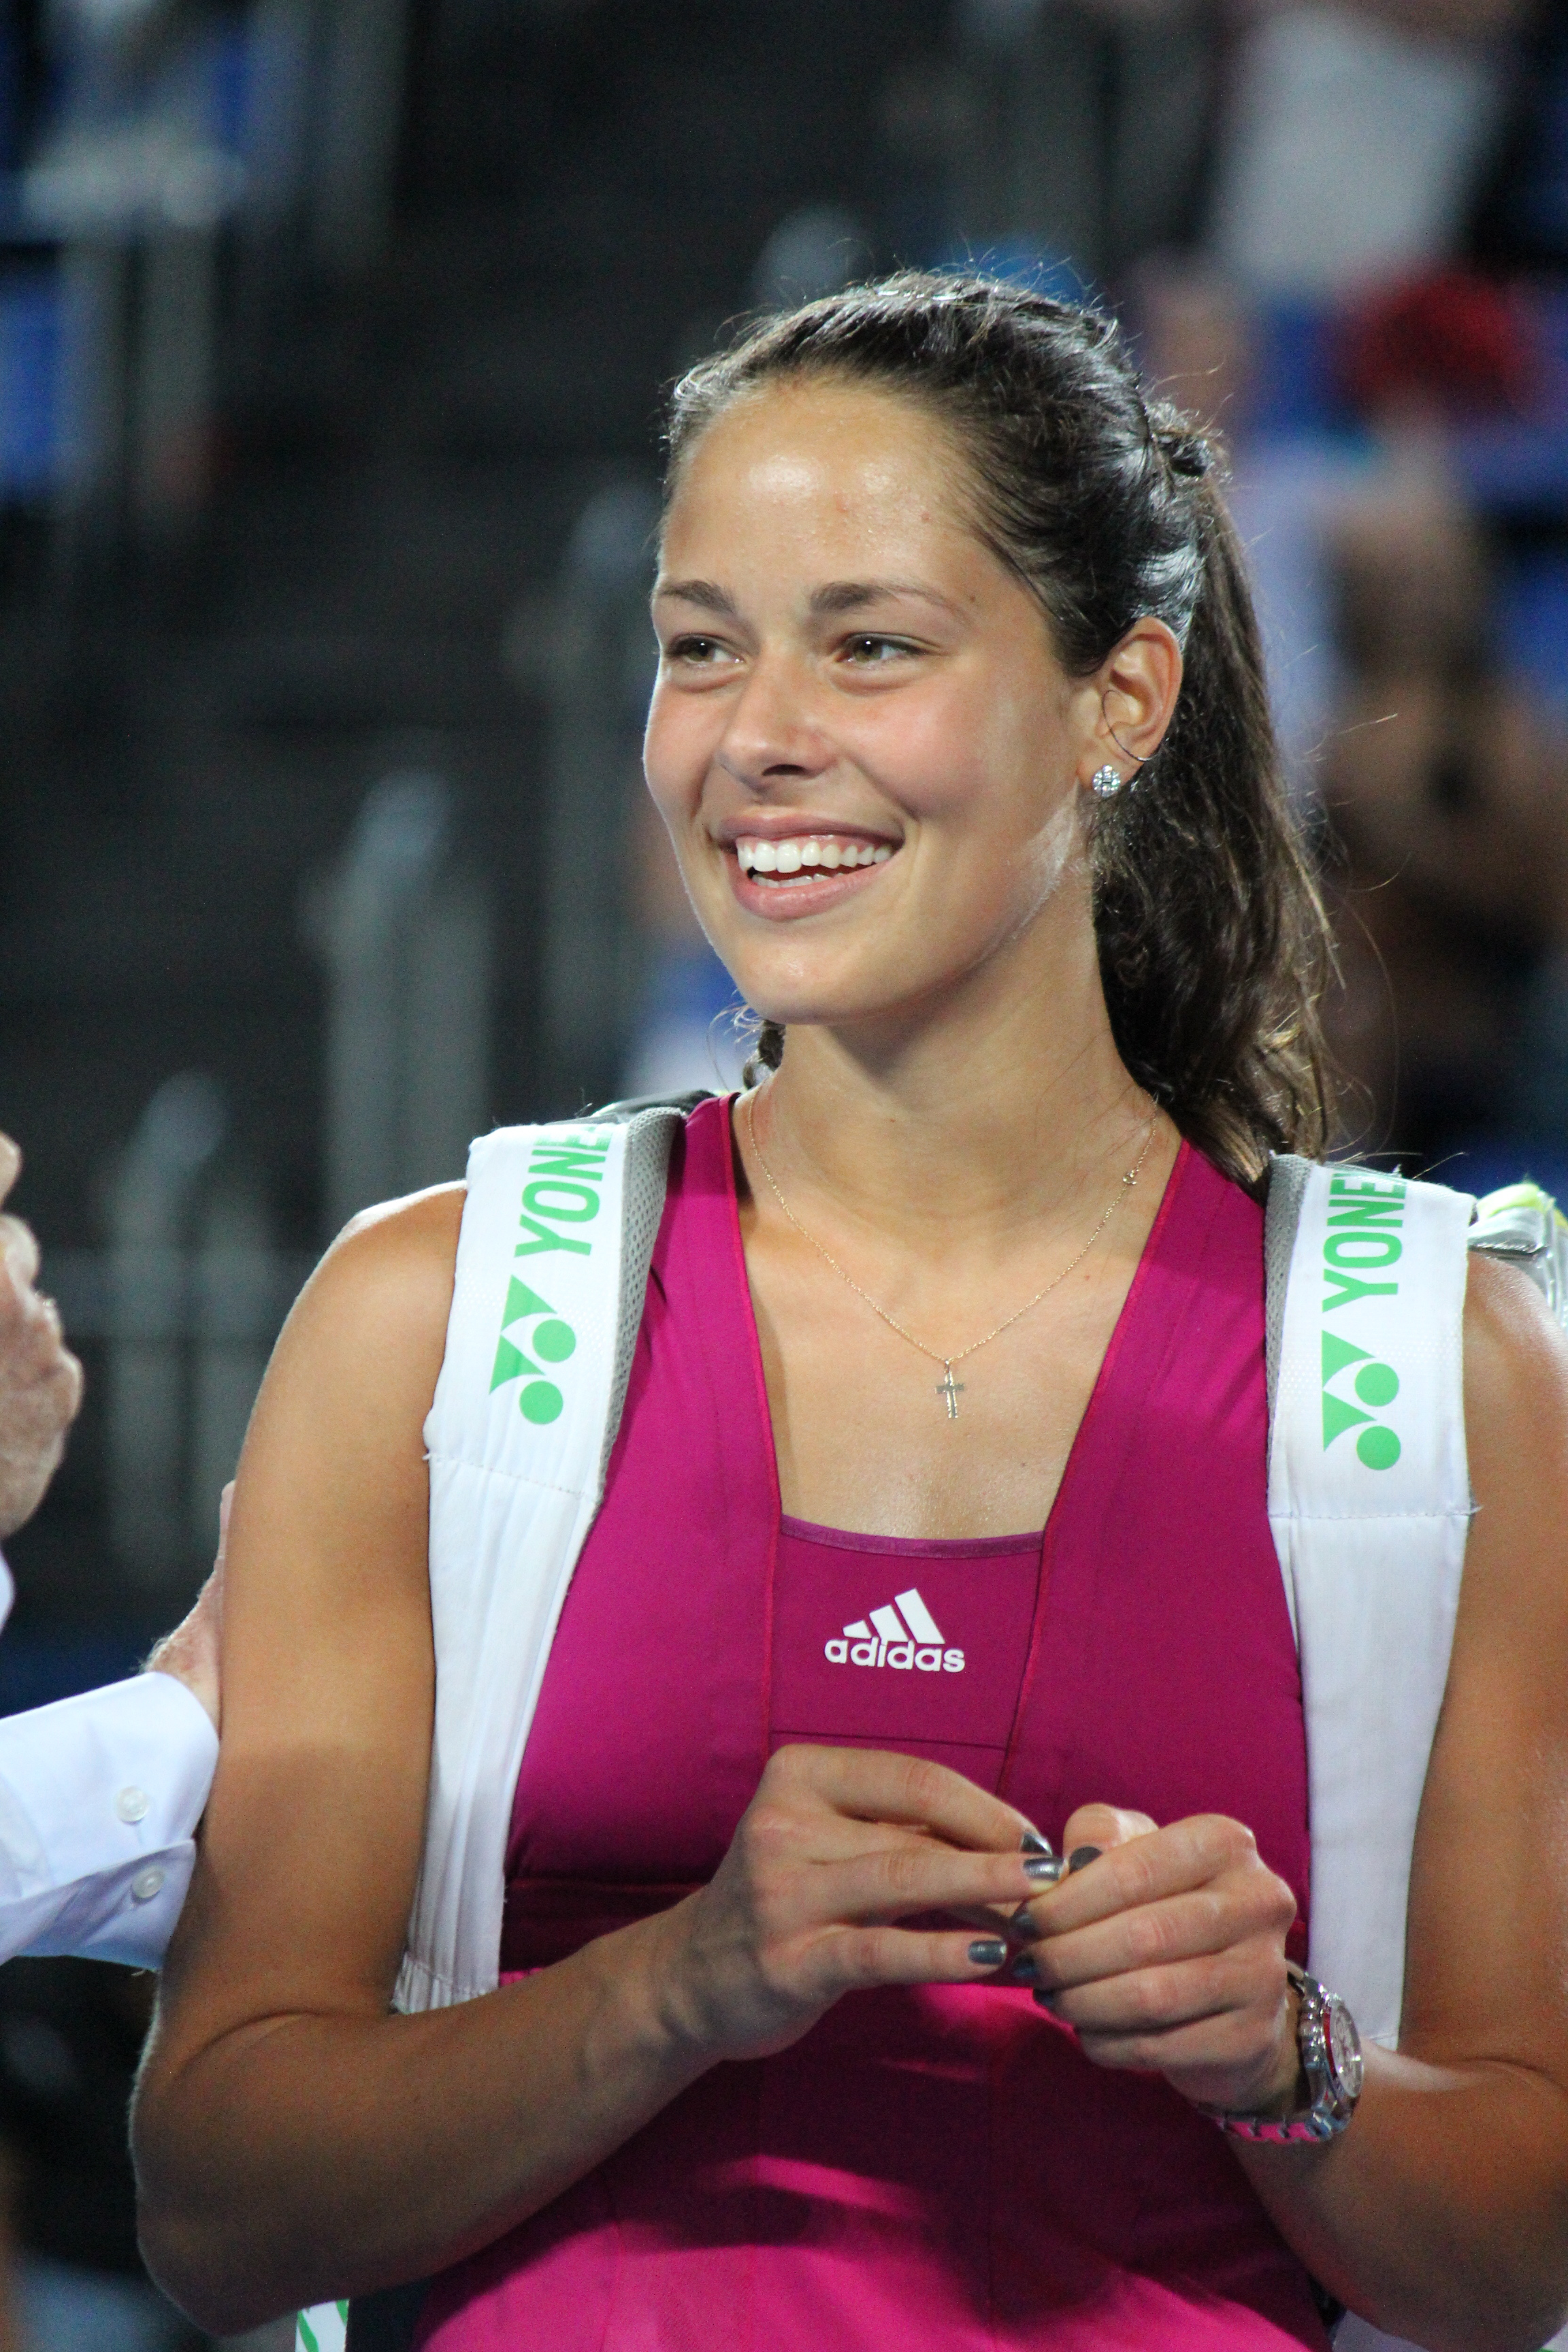 Ana Ivanovic - Wikipedia